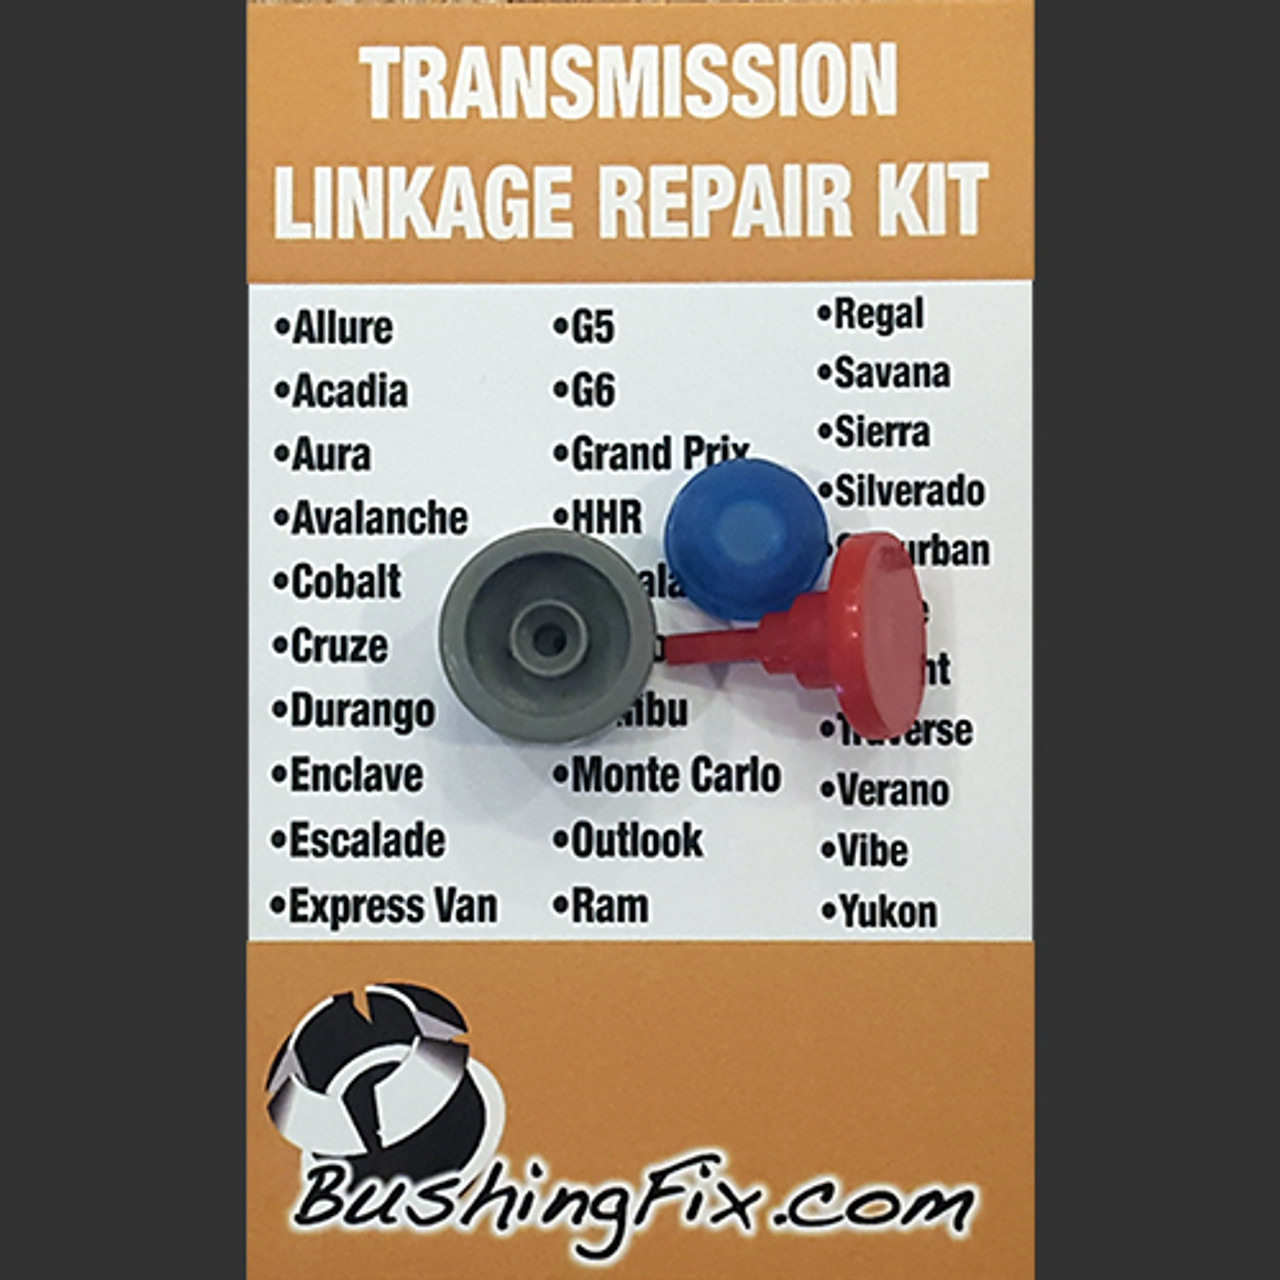 Chevrolet Suburban 3500 transmission shift selector cable repaired using the replacement bushing kit